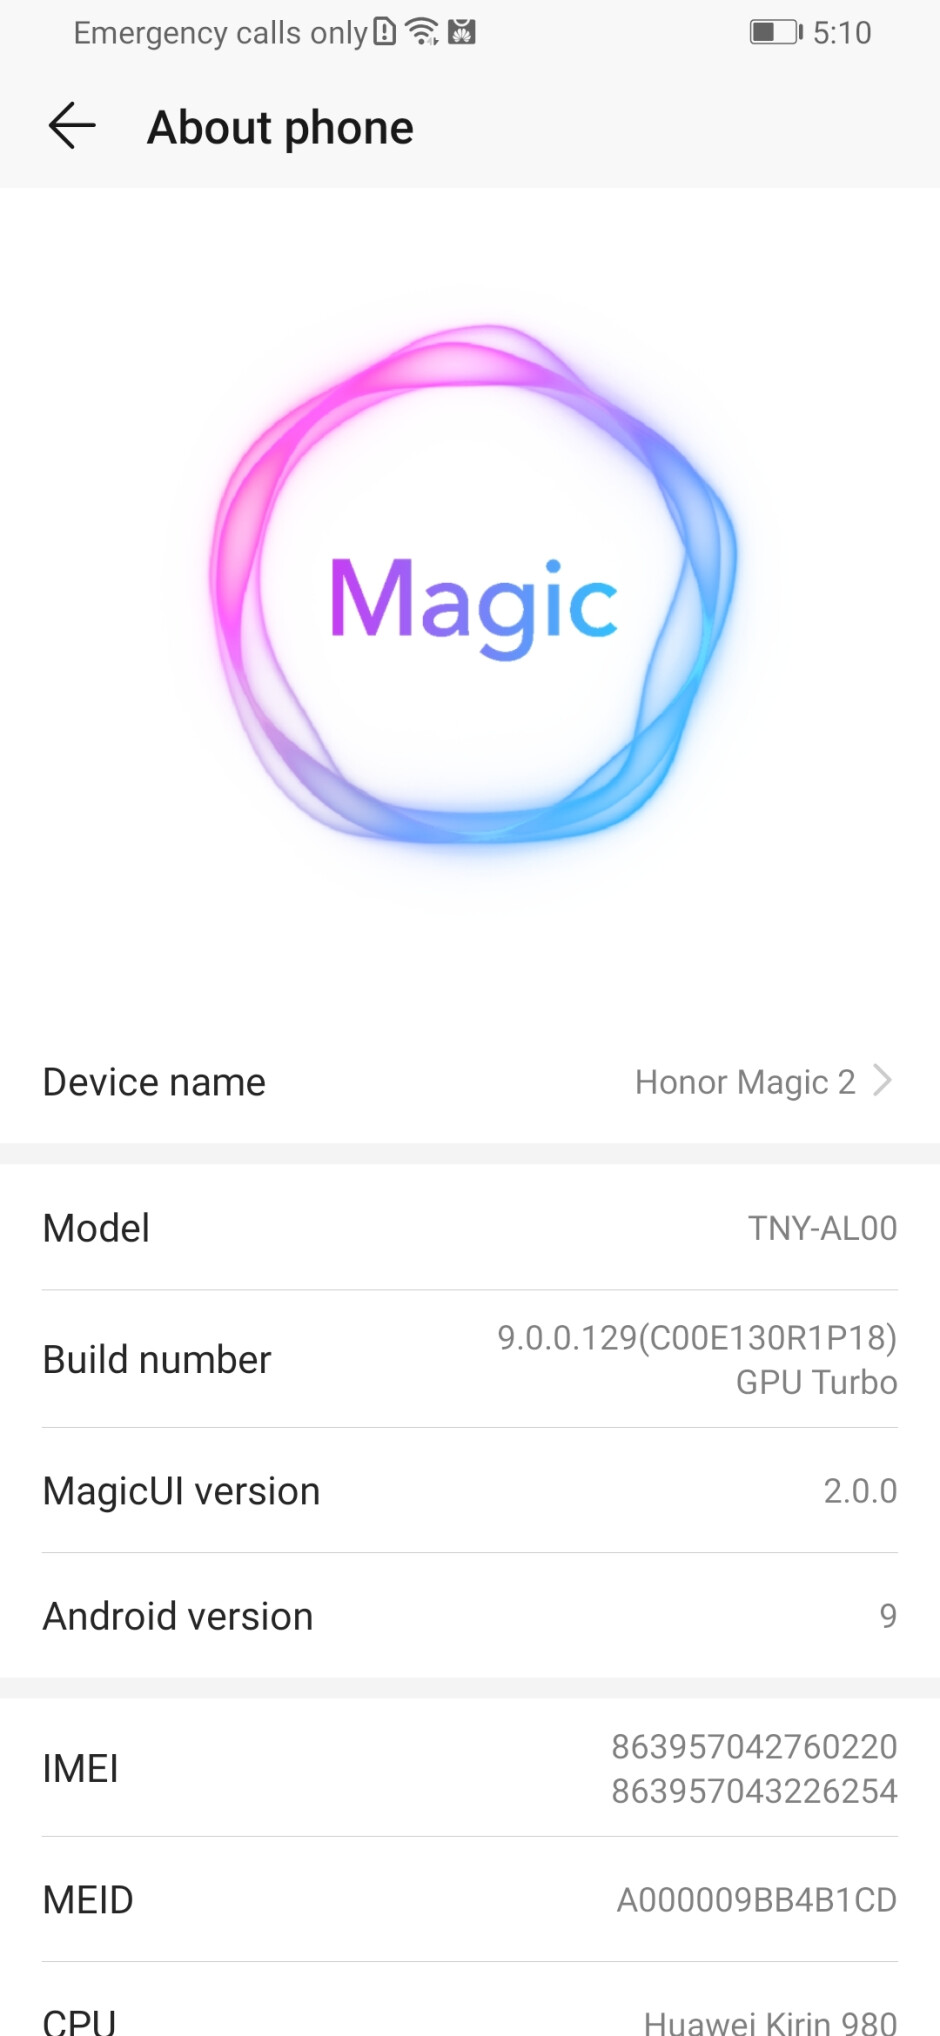 Magic 2.0 UI - Honor Magic 2: unboxing and hands-on first look